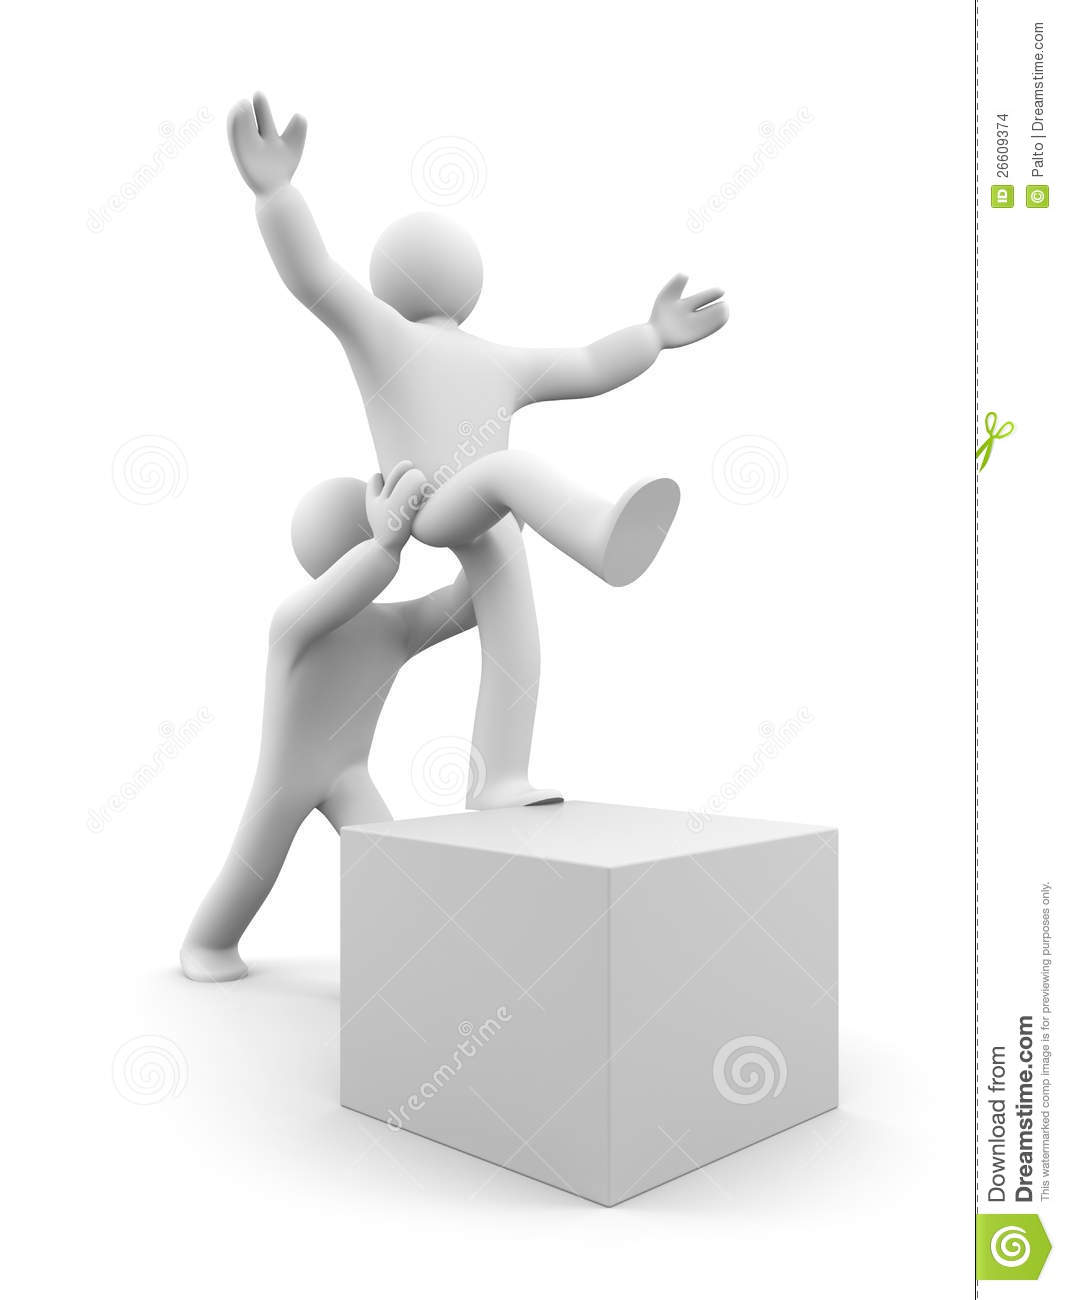 Helping Each Other: Help Each Other Stock Images